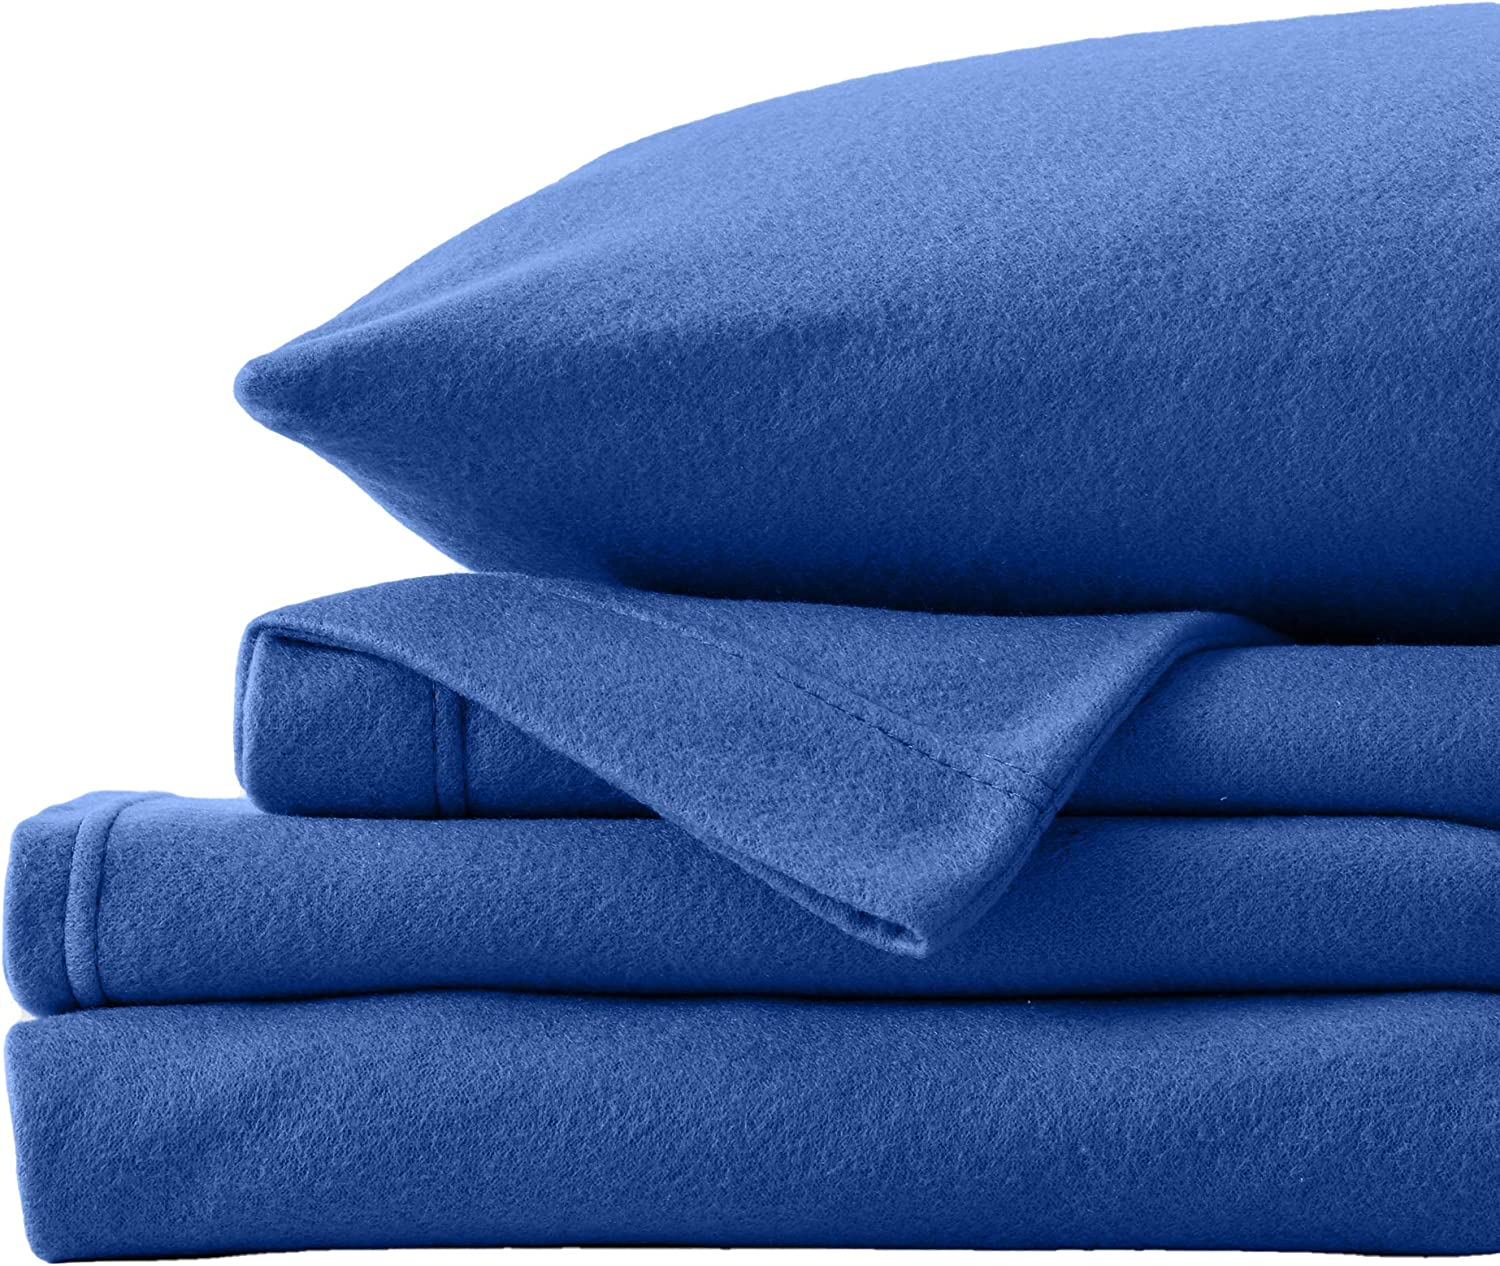 Super Soft Extra Plush Fleece Sheet Set. Cozy, Warm, Durable, Smooth, Breathable Winter Sheets in Solid Colors. Christina Collection (Twin, Navy)